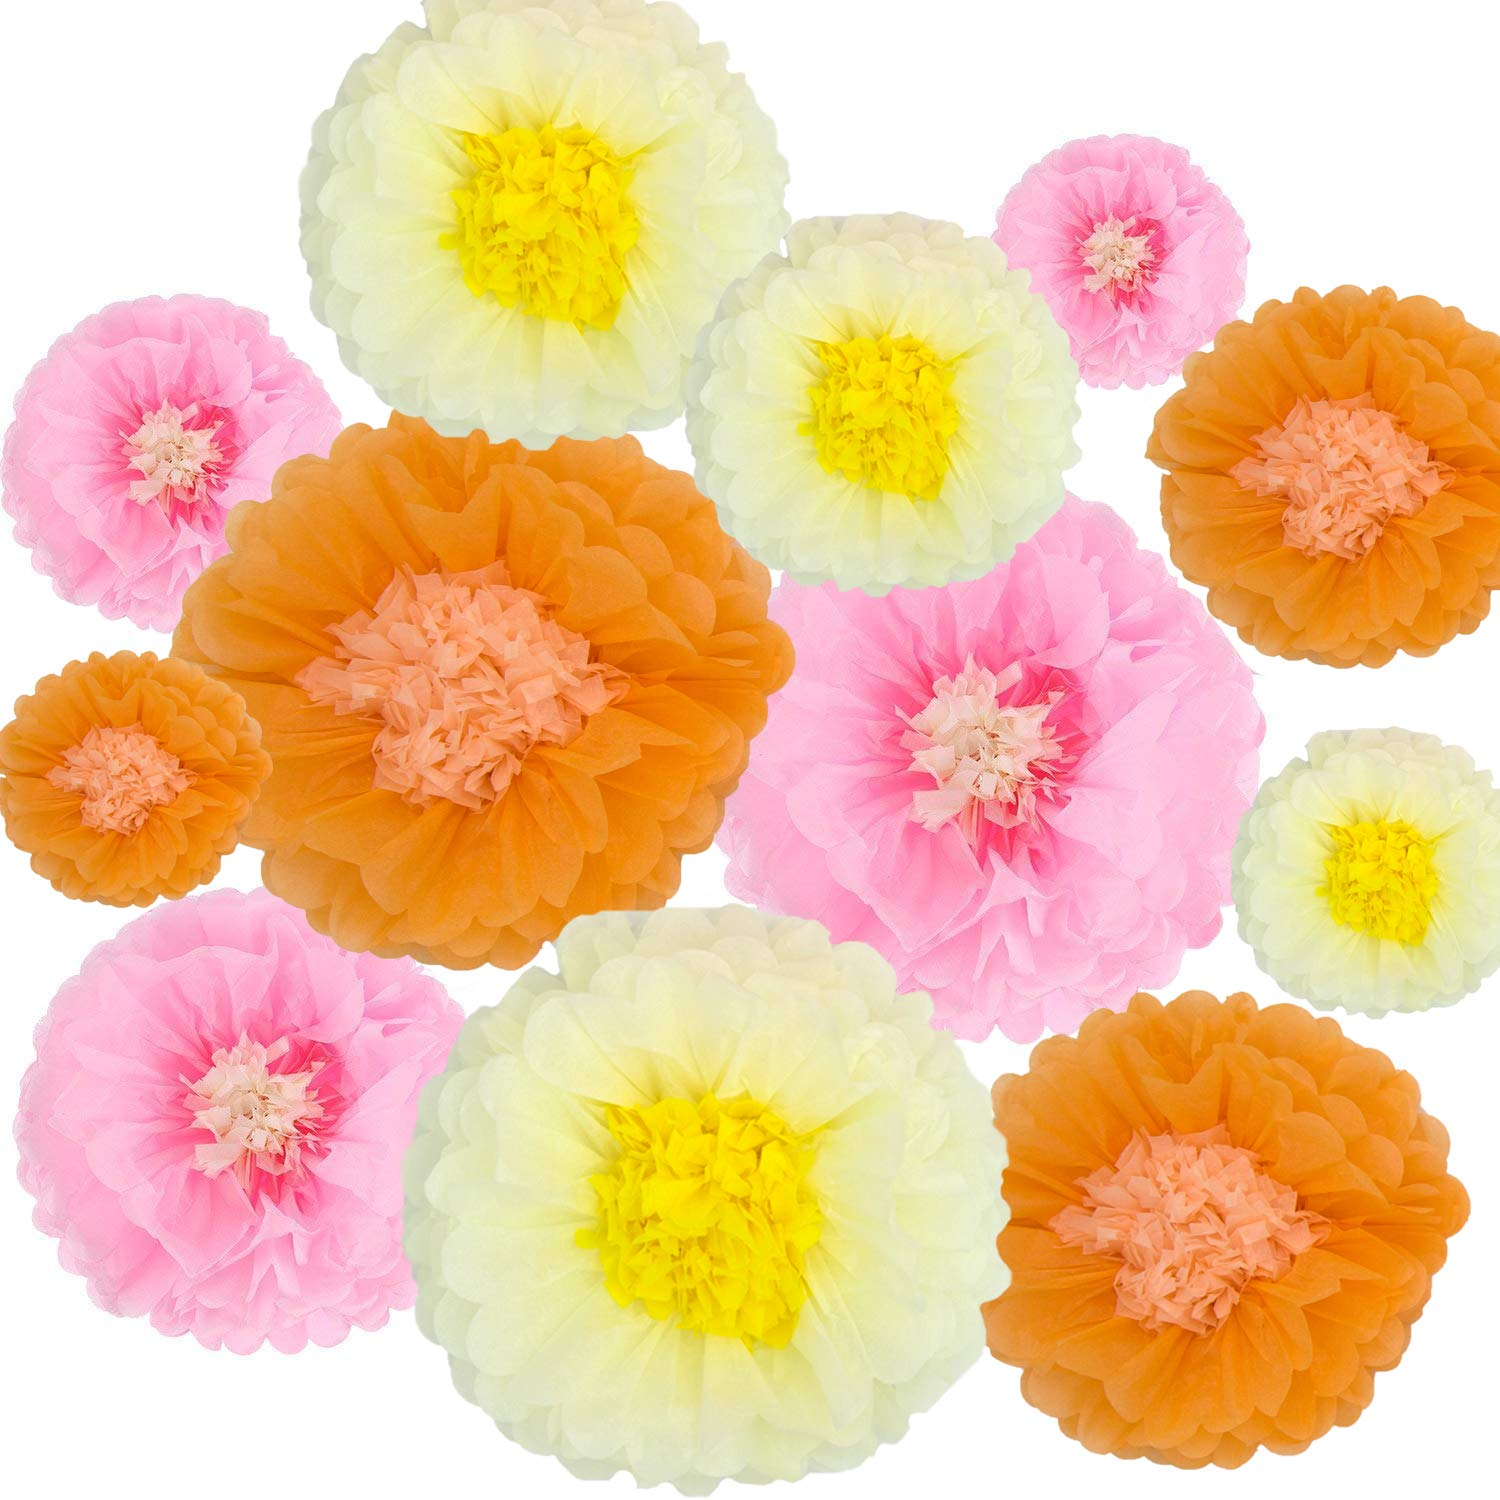 Paper Flowers Decorations,12 Pcs Tissue Paper Flower DIY Crafting for Wedding Backdrop Nursery Wall Baby Shower Decoration,Orange